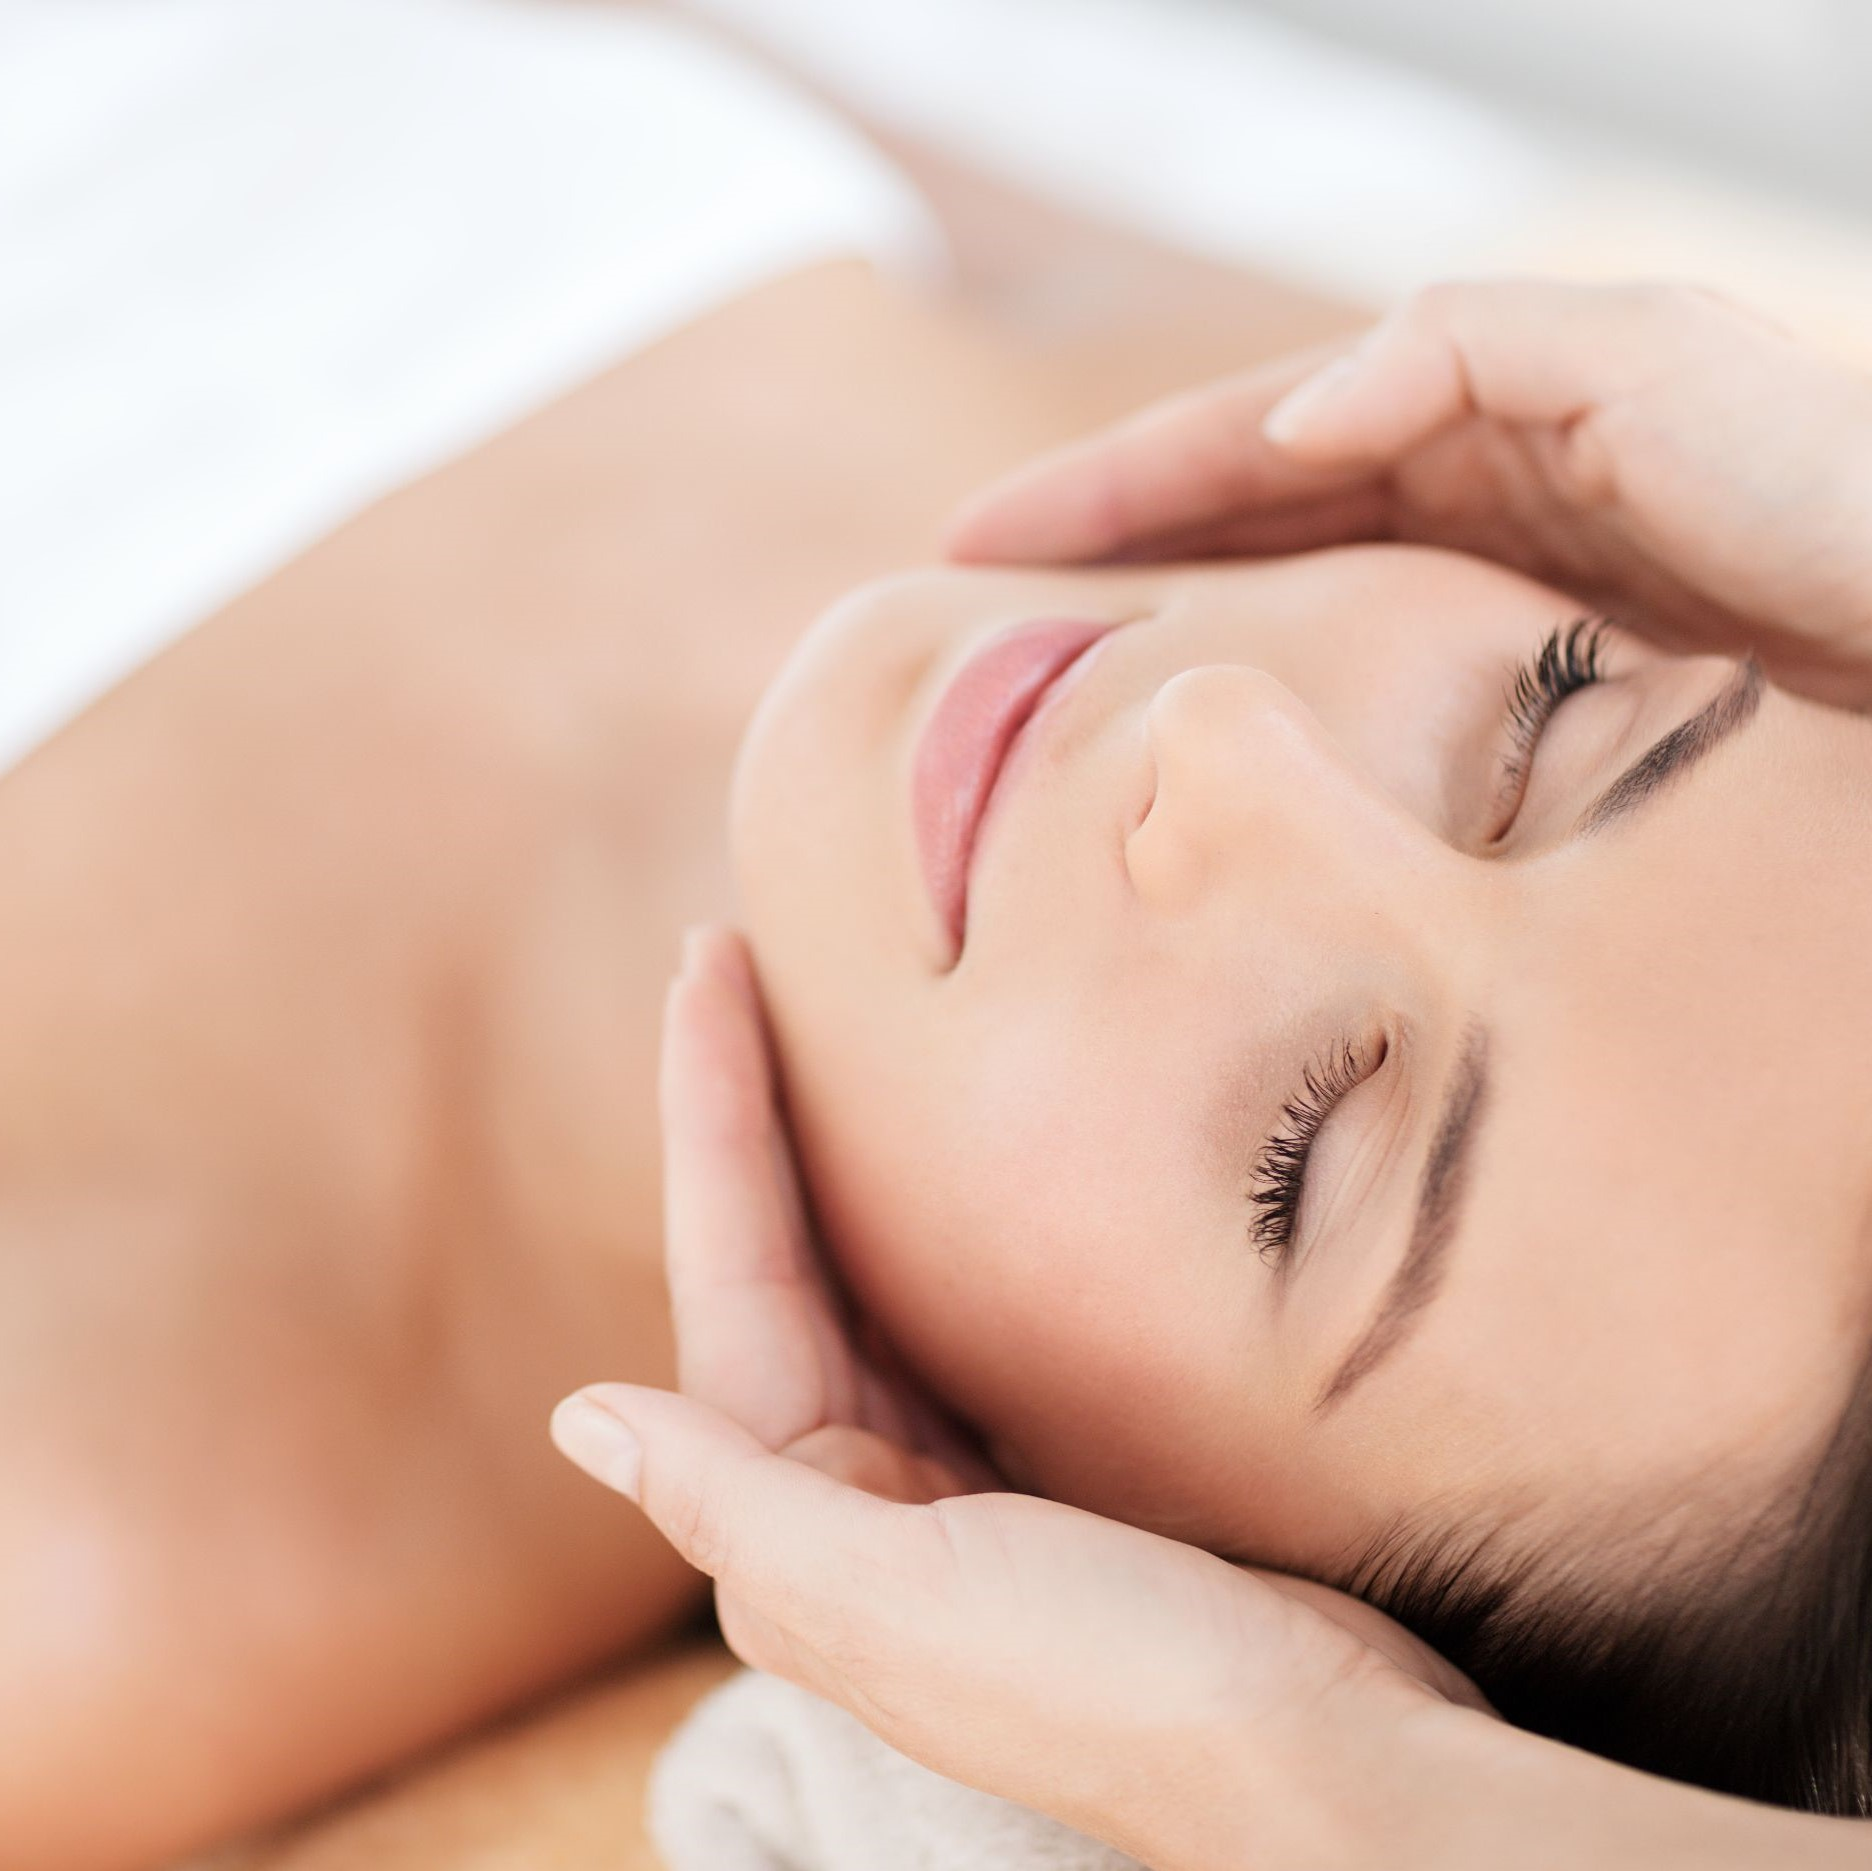 90-Min Spa Indulgence for 1 Person (1 Session)